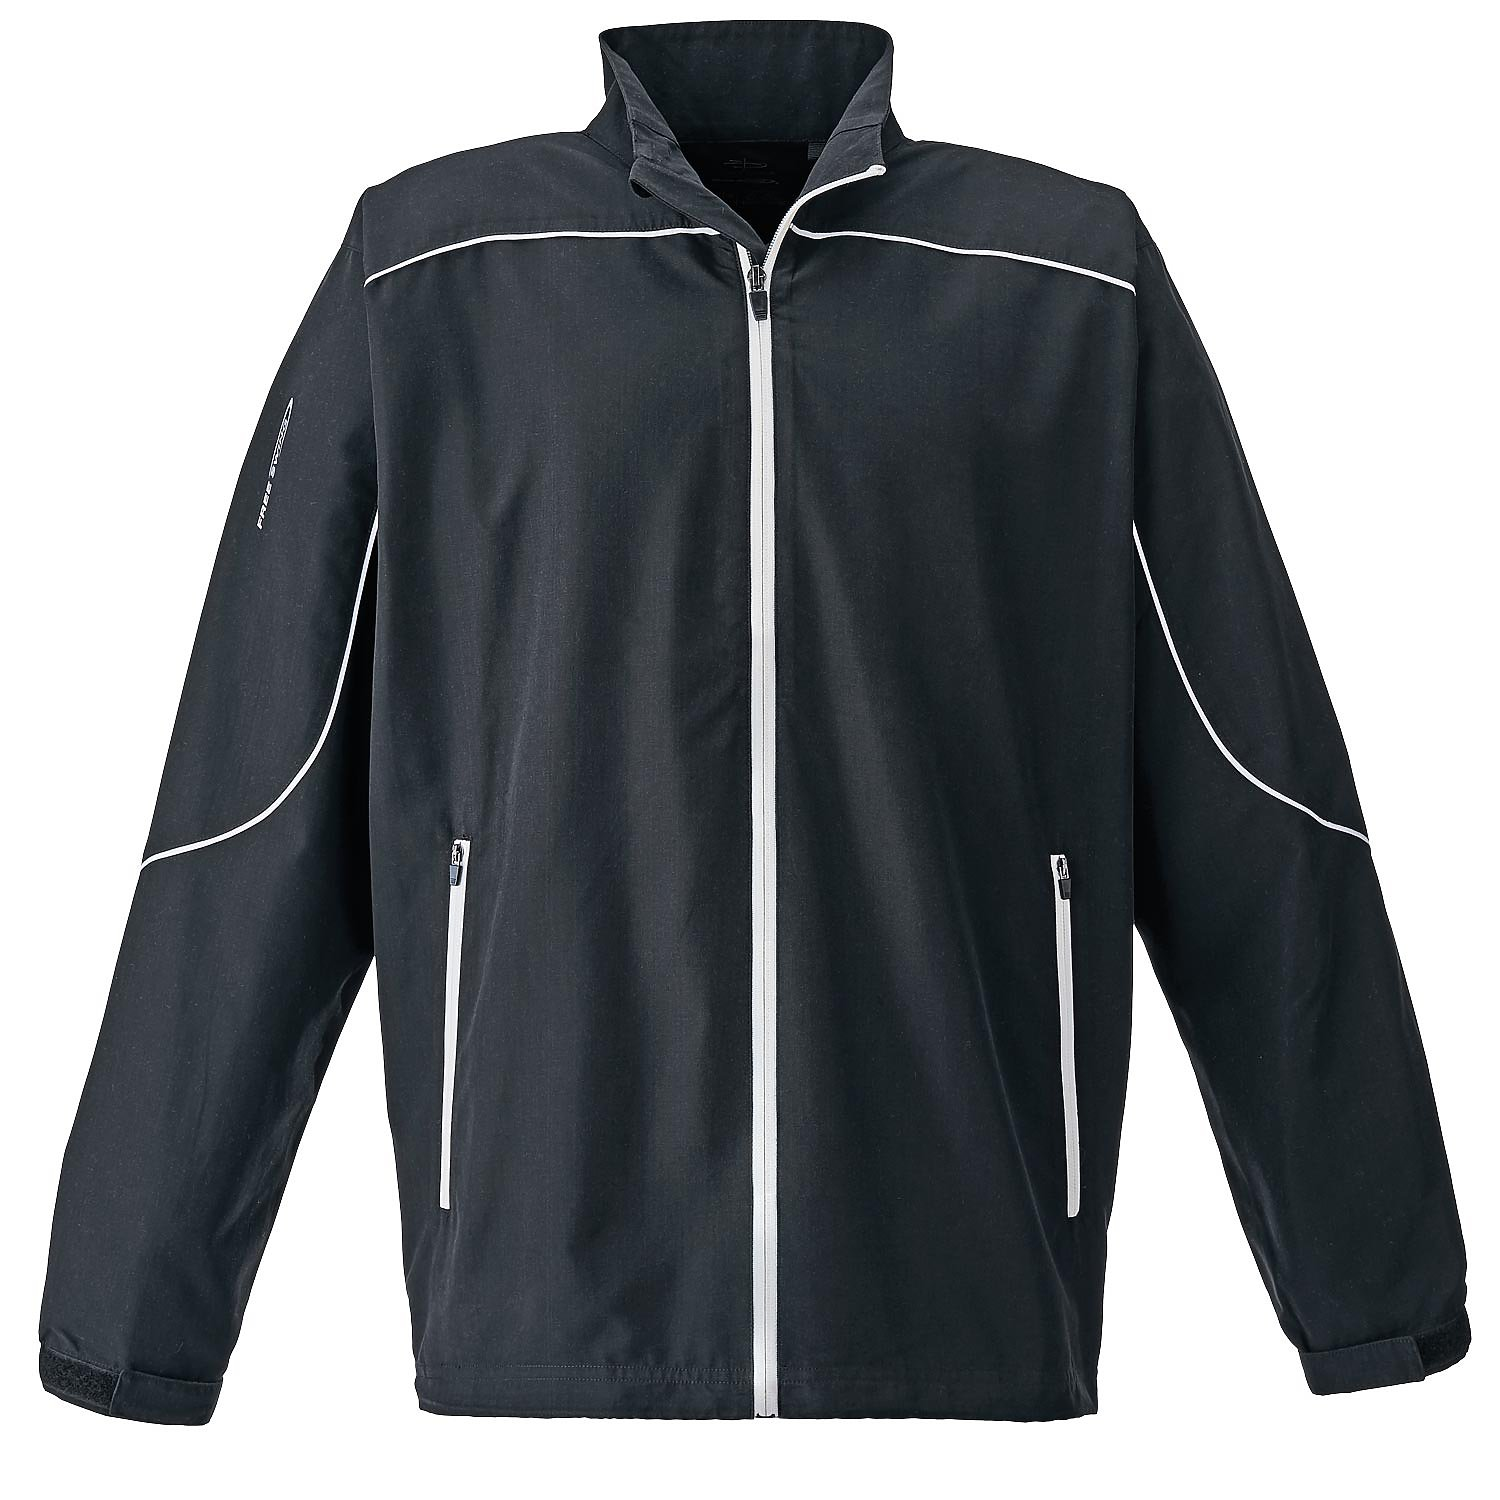 Page & Tuttle P1988 - Men's Piped Full-Zip Long Sleeve Windshirt